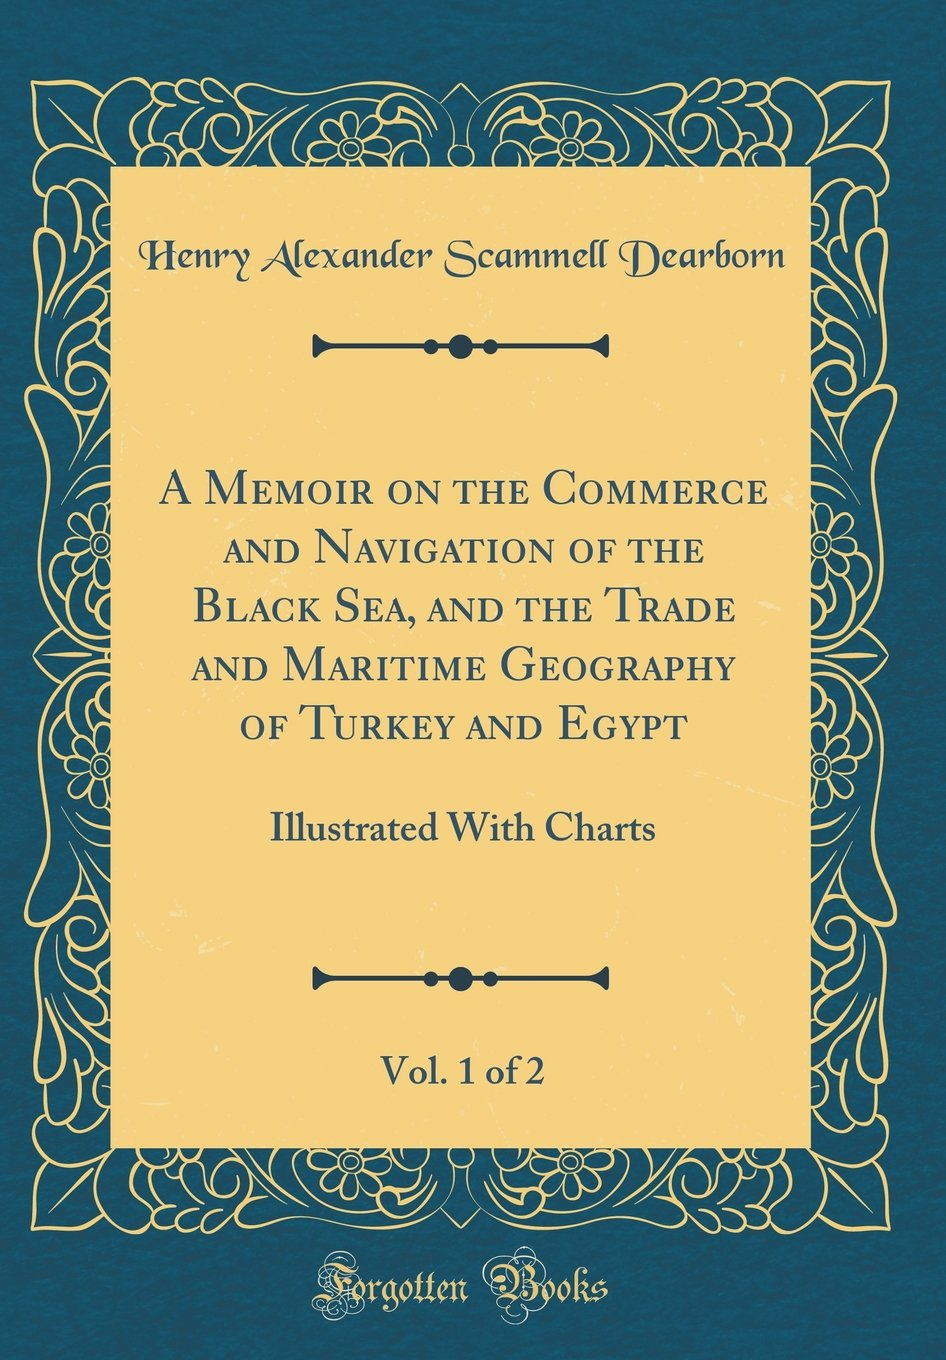 A Memoir on the Commerce and Navigation of the Black Sea, and the Trade and Maritime Geography of Turkey and Egypt, Vol. 1 of 2: Illustrated With Charts (Classic Reprint) pdf